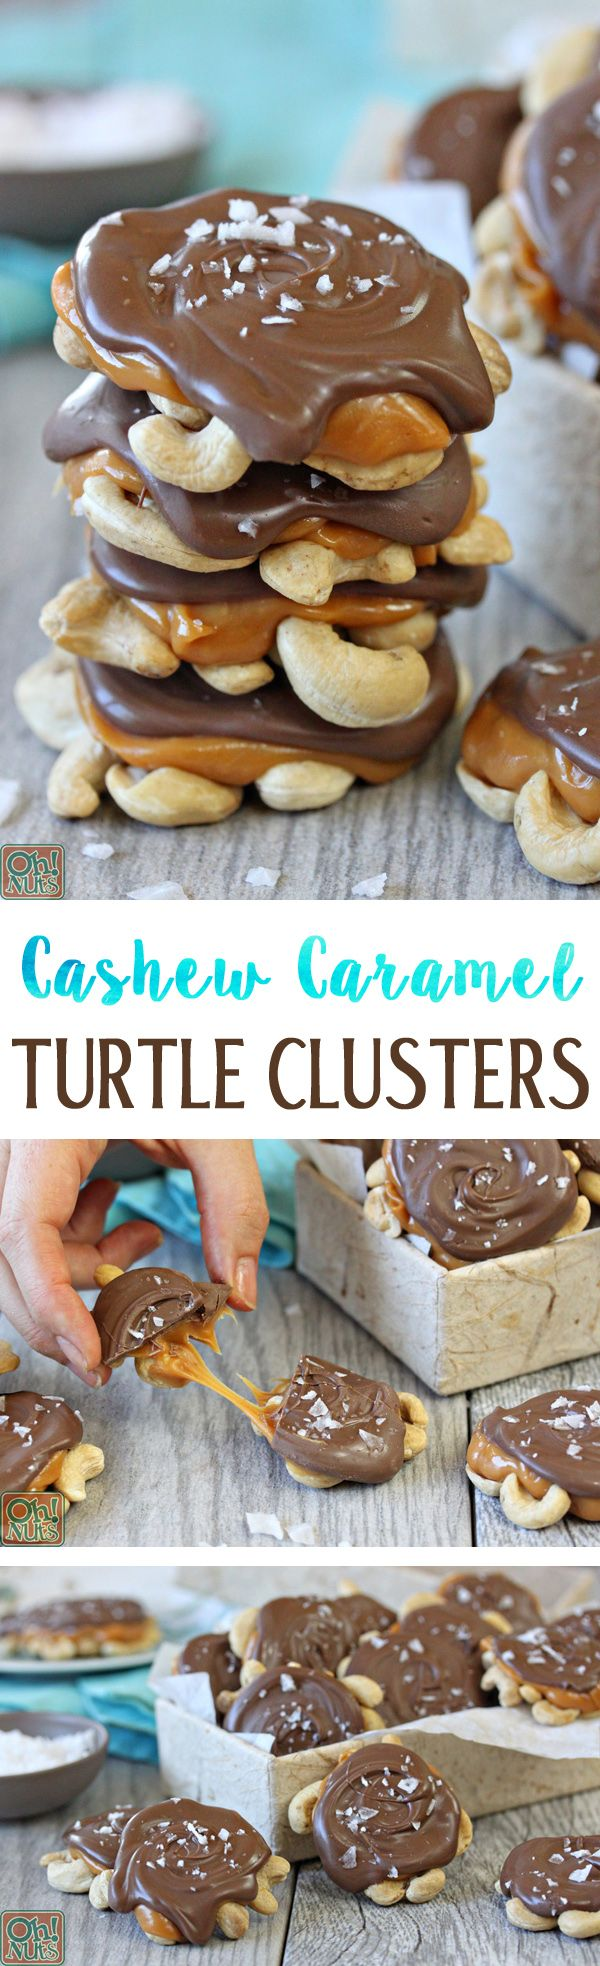 Cashew Caramel Chocolate Turtle Clusters - Give regular turtles a twist by using cashews instead!